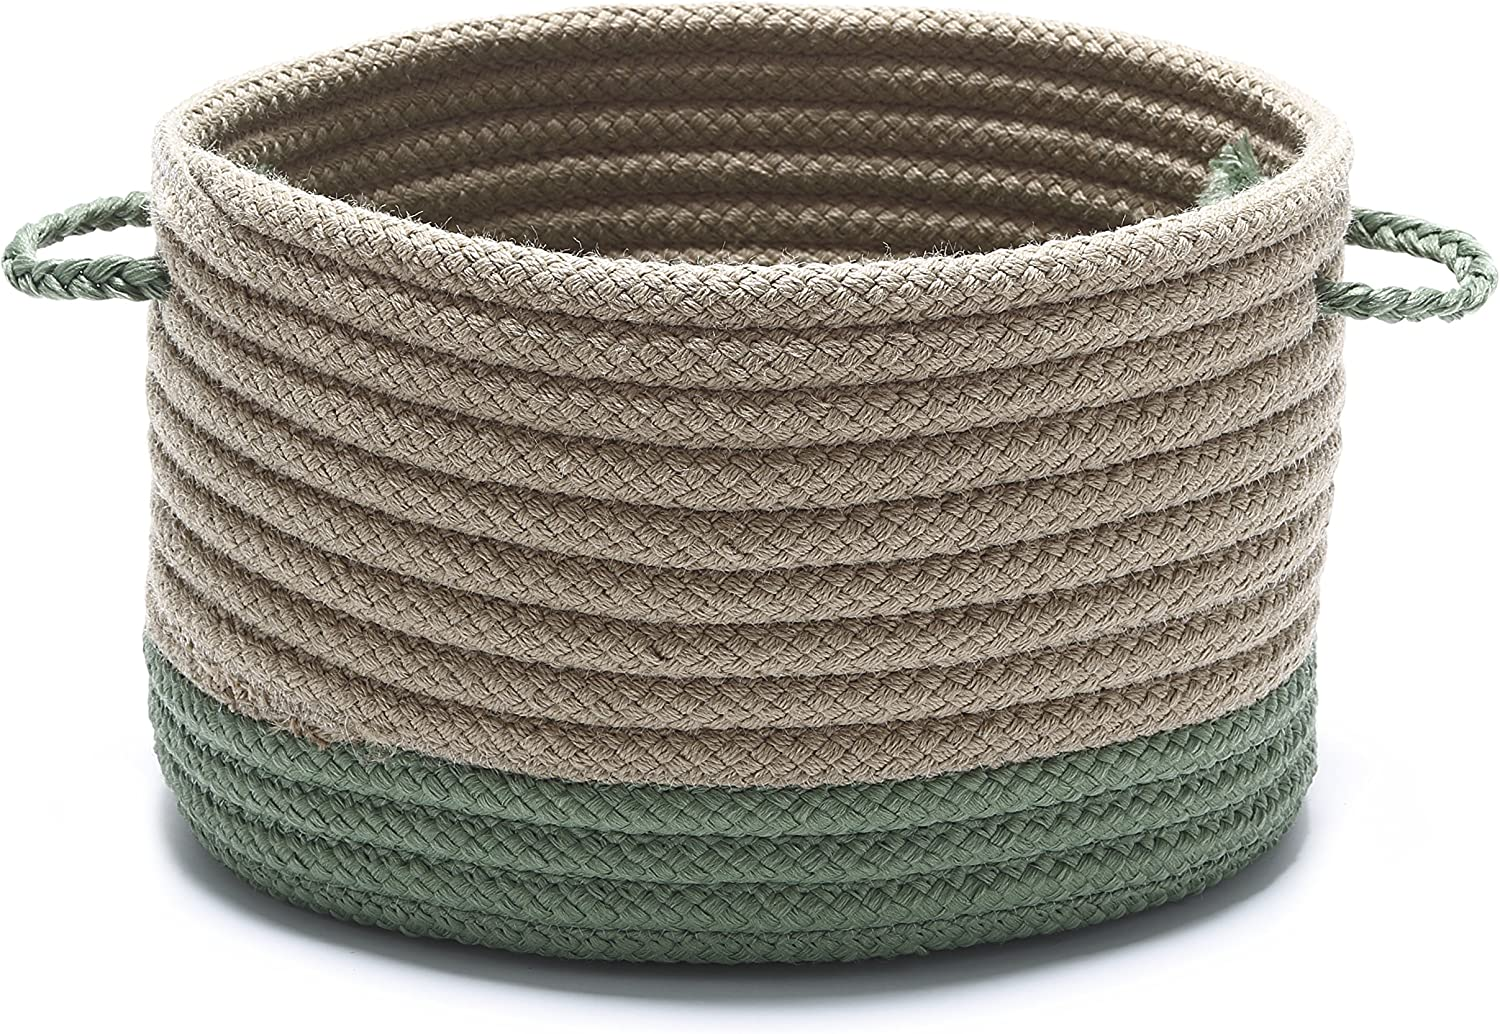 Marina Baskets Textured Basket 15 by 15 by 18-Inch Moss Green